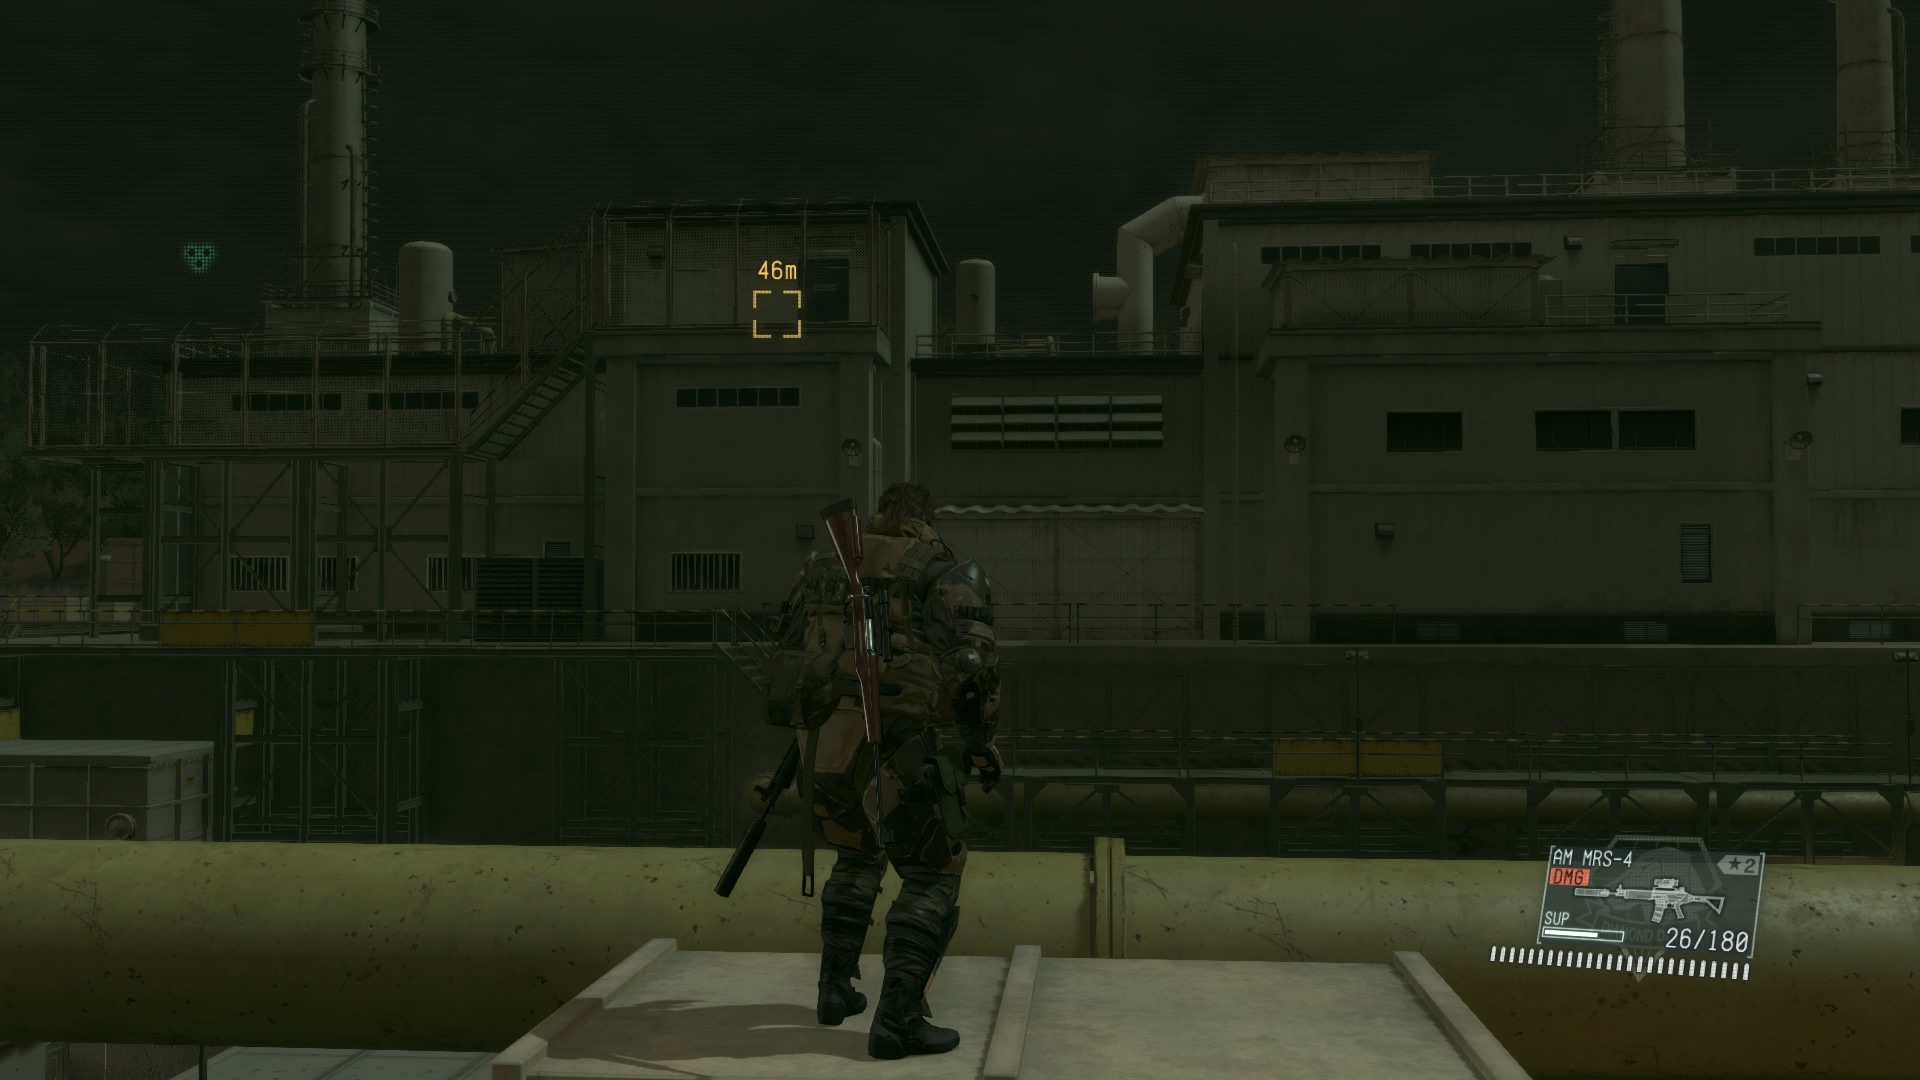 mgs5-pitch-dark-4